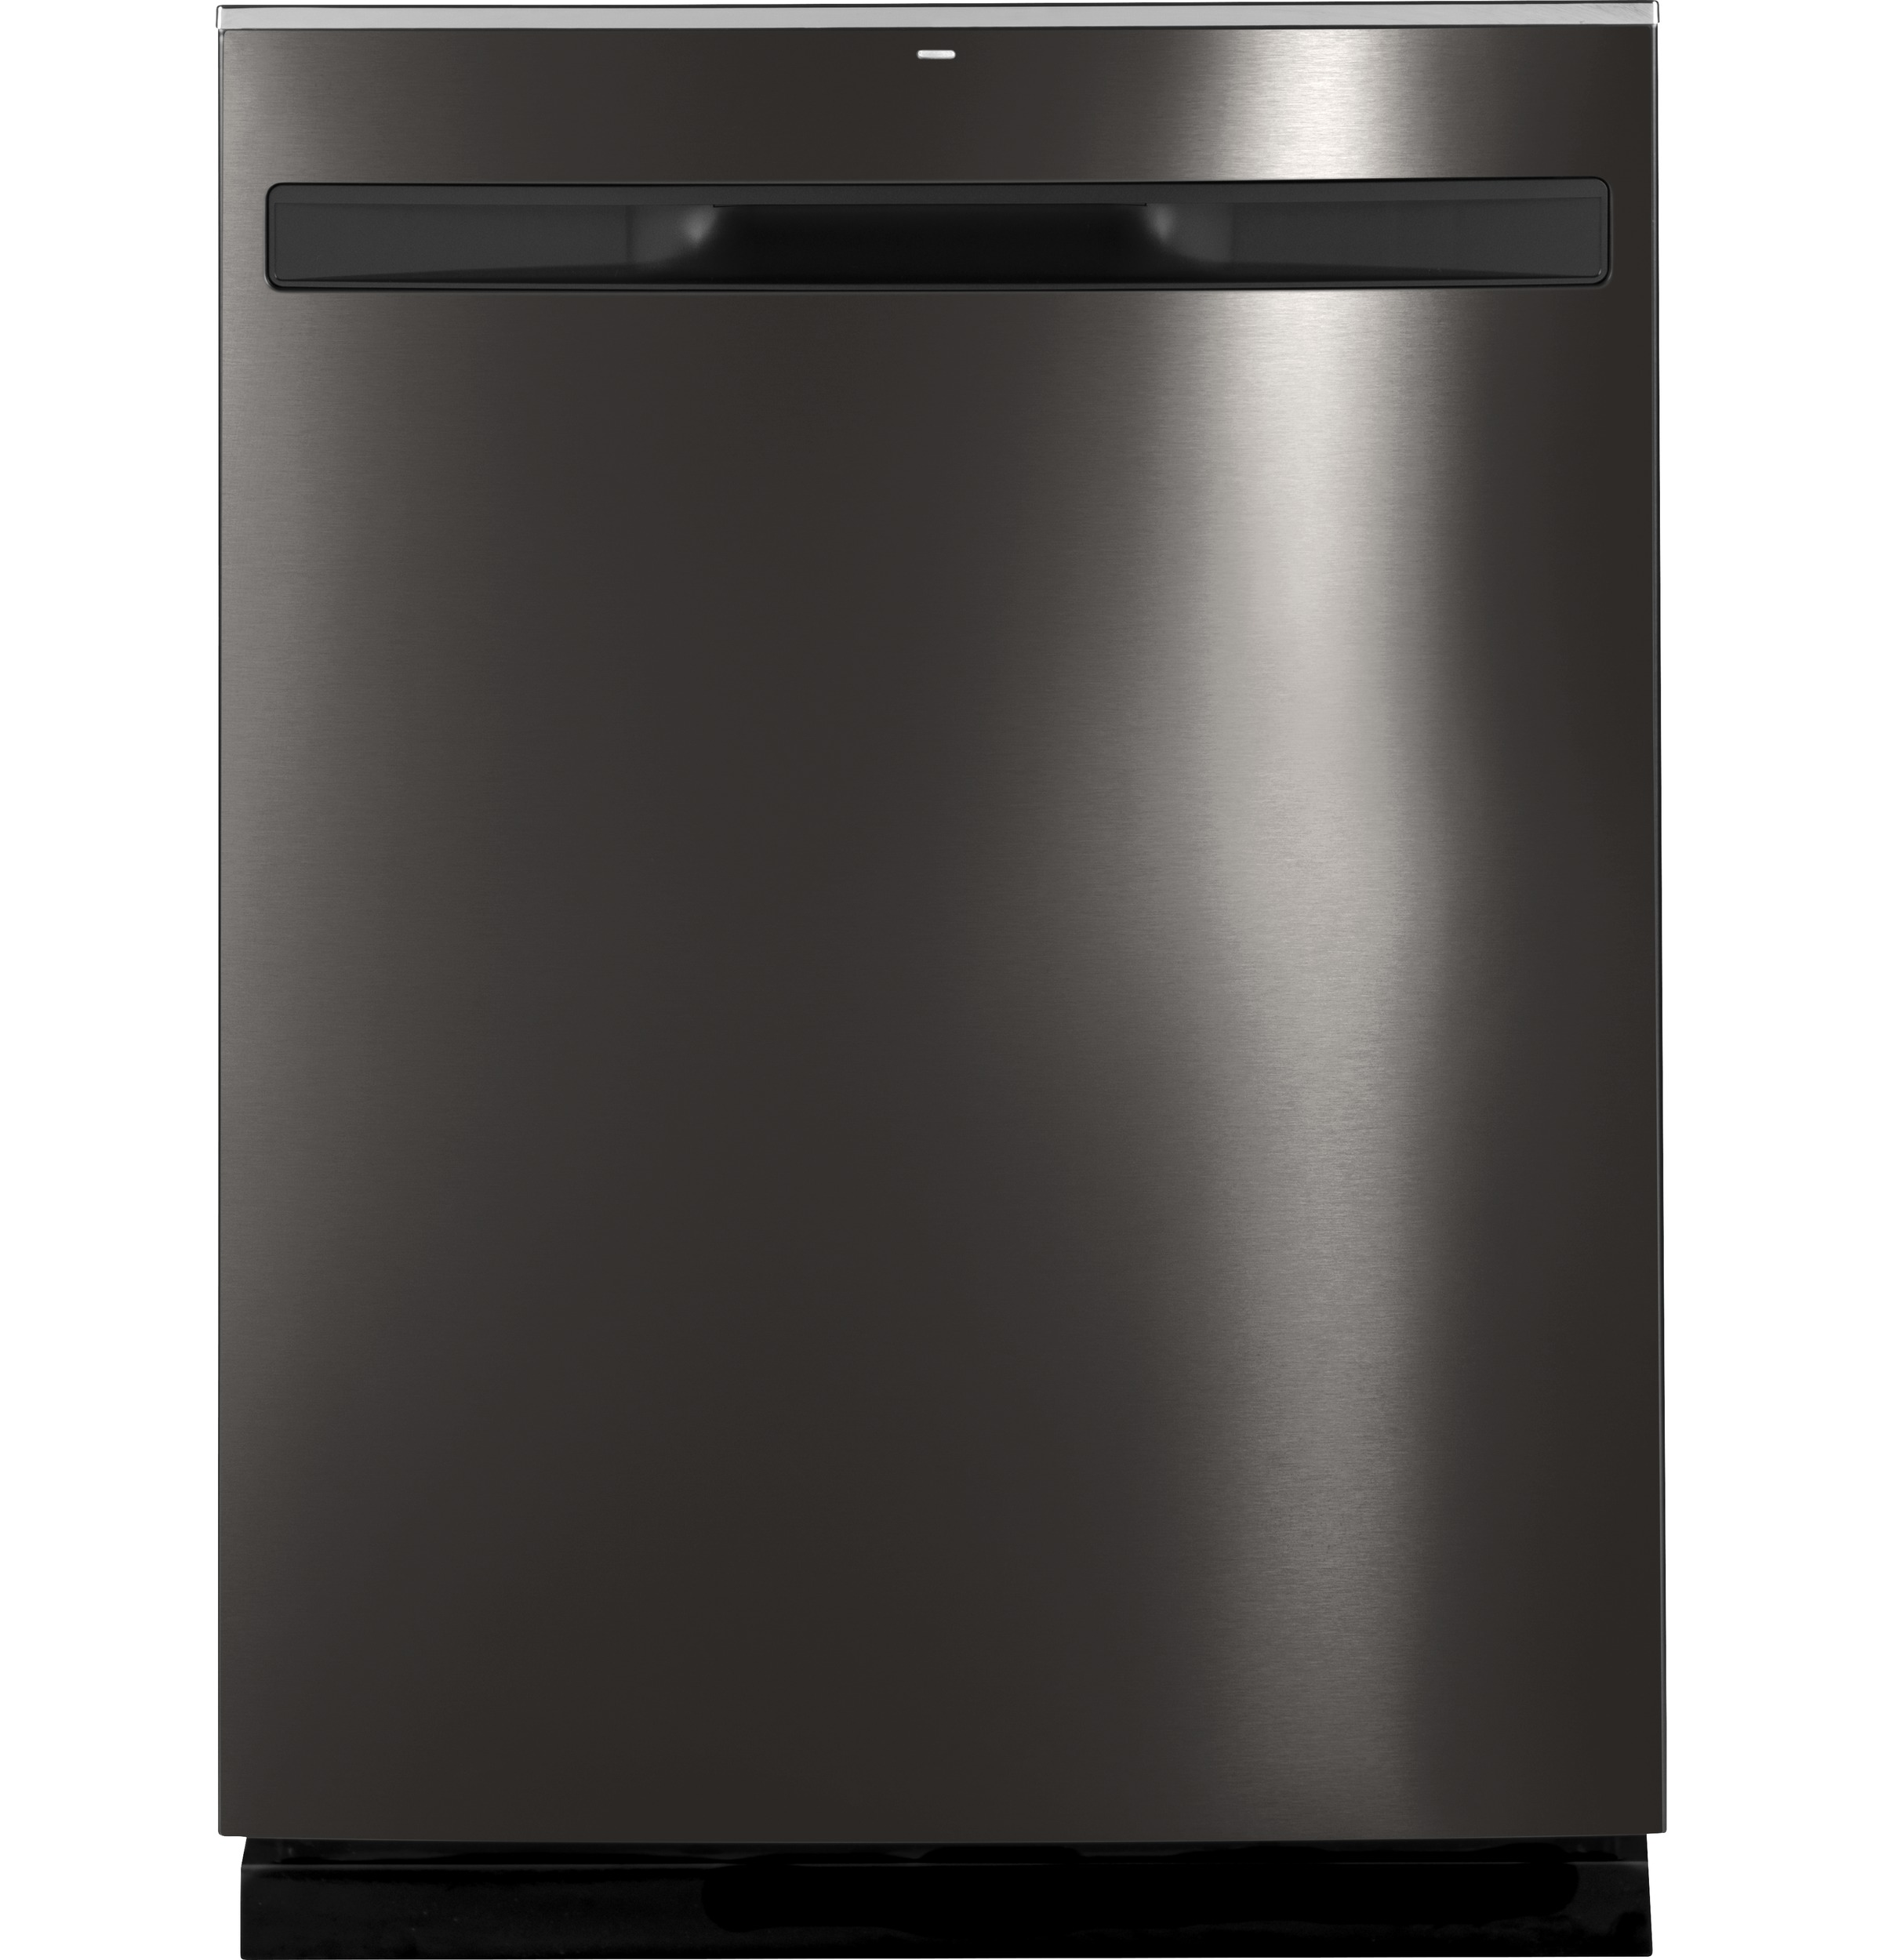 "GE Appliances GDP695SBMTS 24"""" Stainless Steel Interior Dishwasher - Black Stainless Steel"